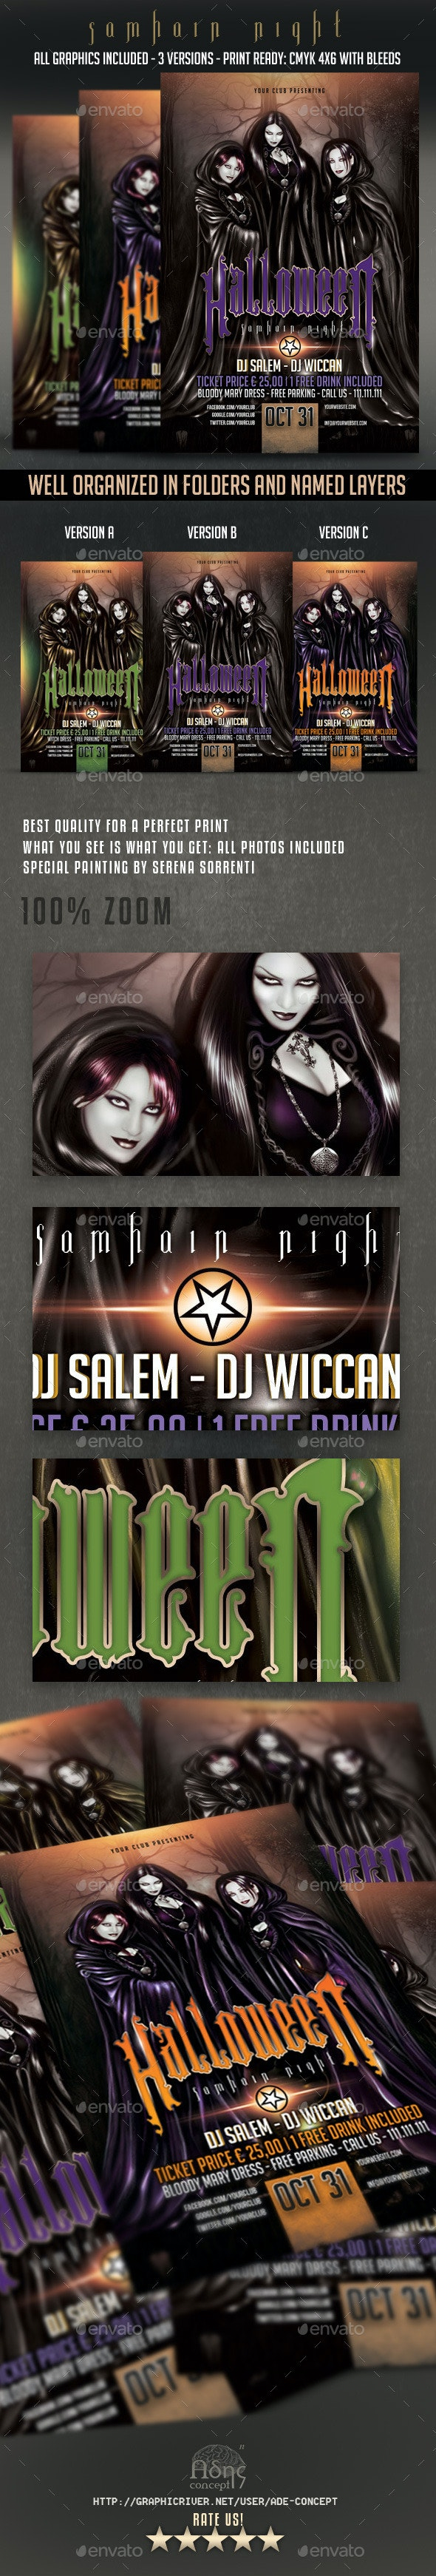 Samhain Night Flyer - Clubs & Parties Events